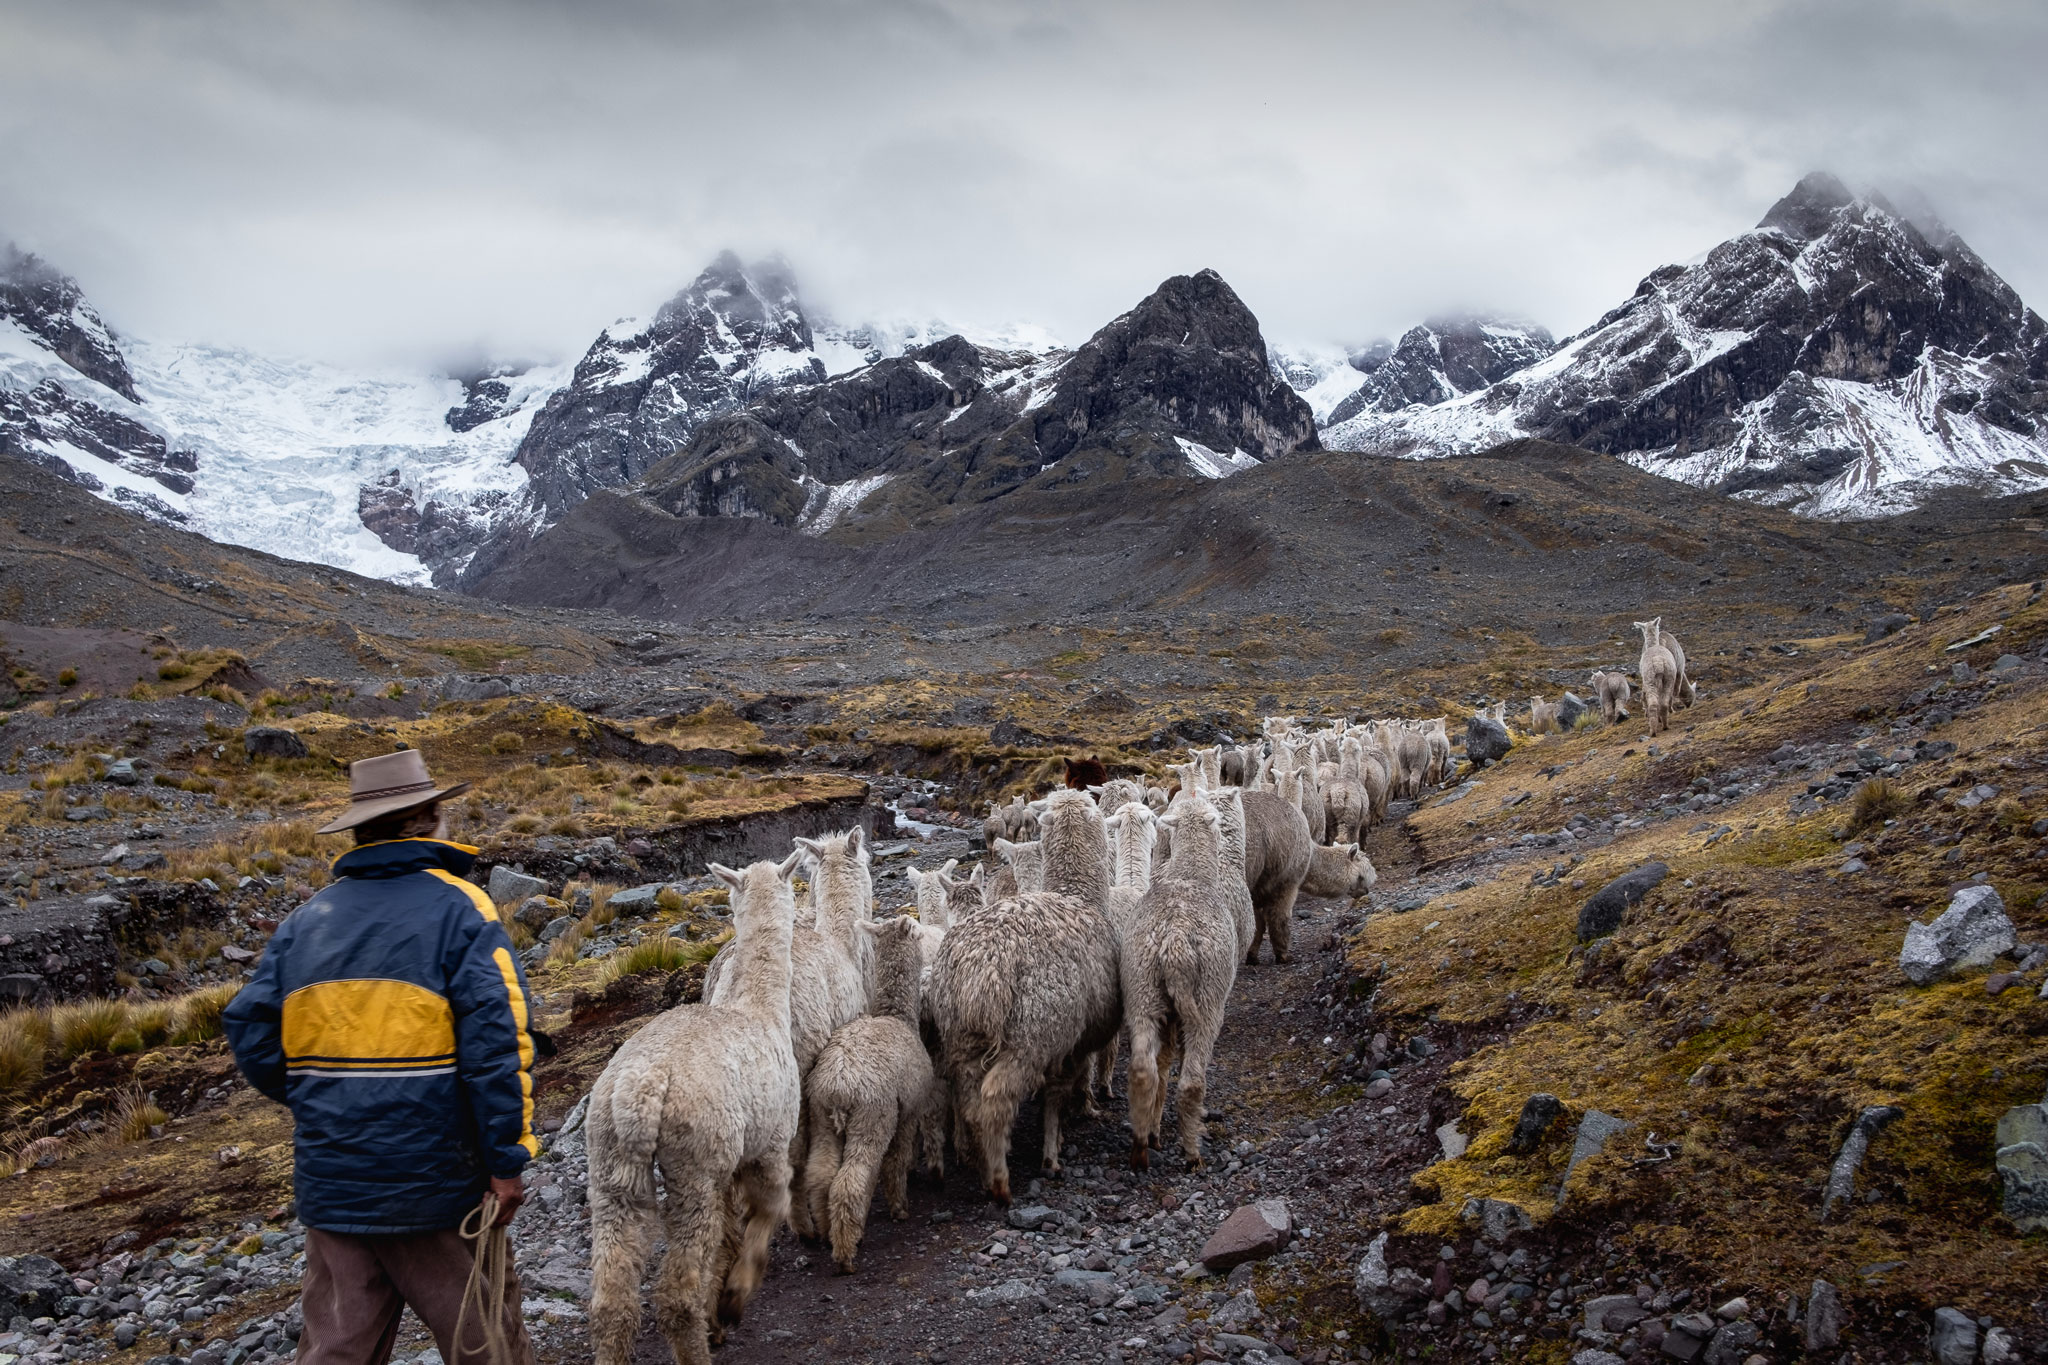 THE PERUVIAN SHEPHERD